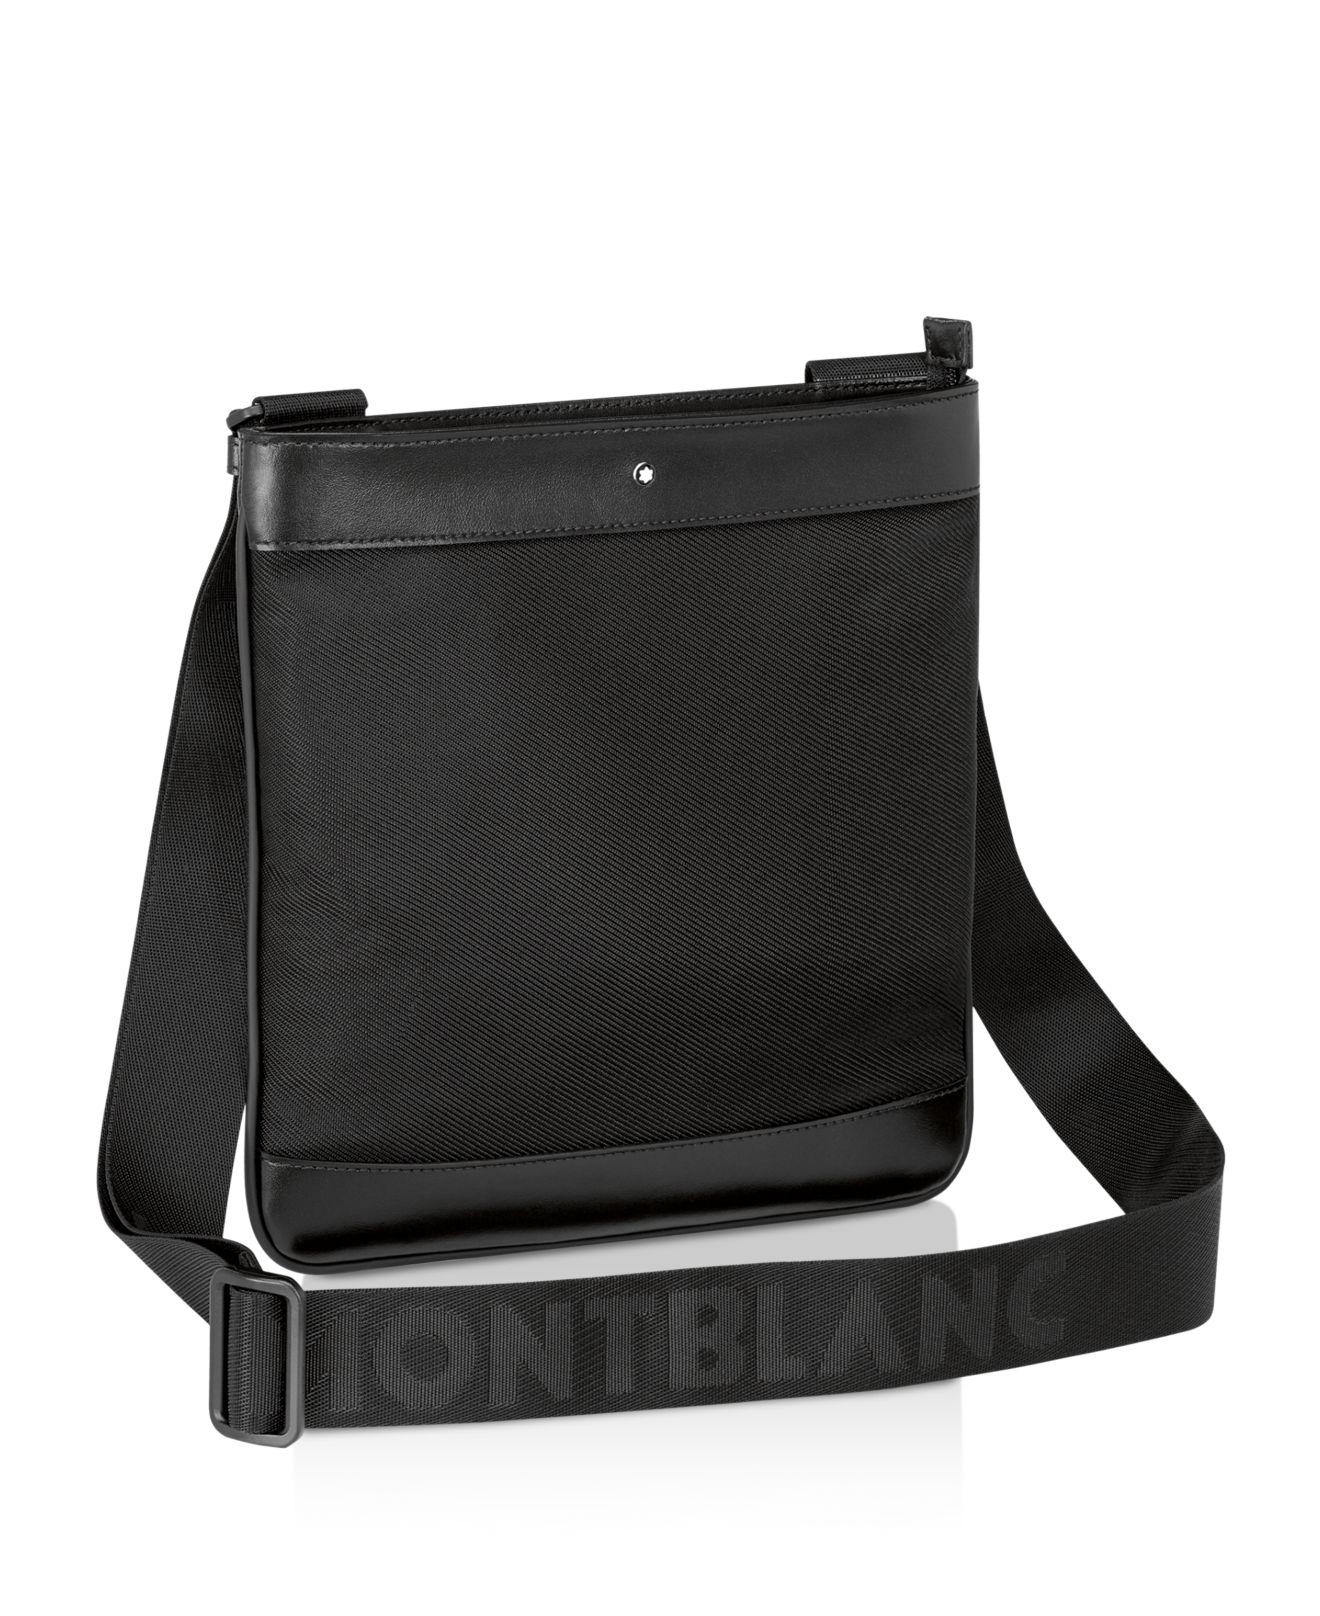 Montblanc Nightflight Envelope Crossbody Bag In Black Lyst